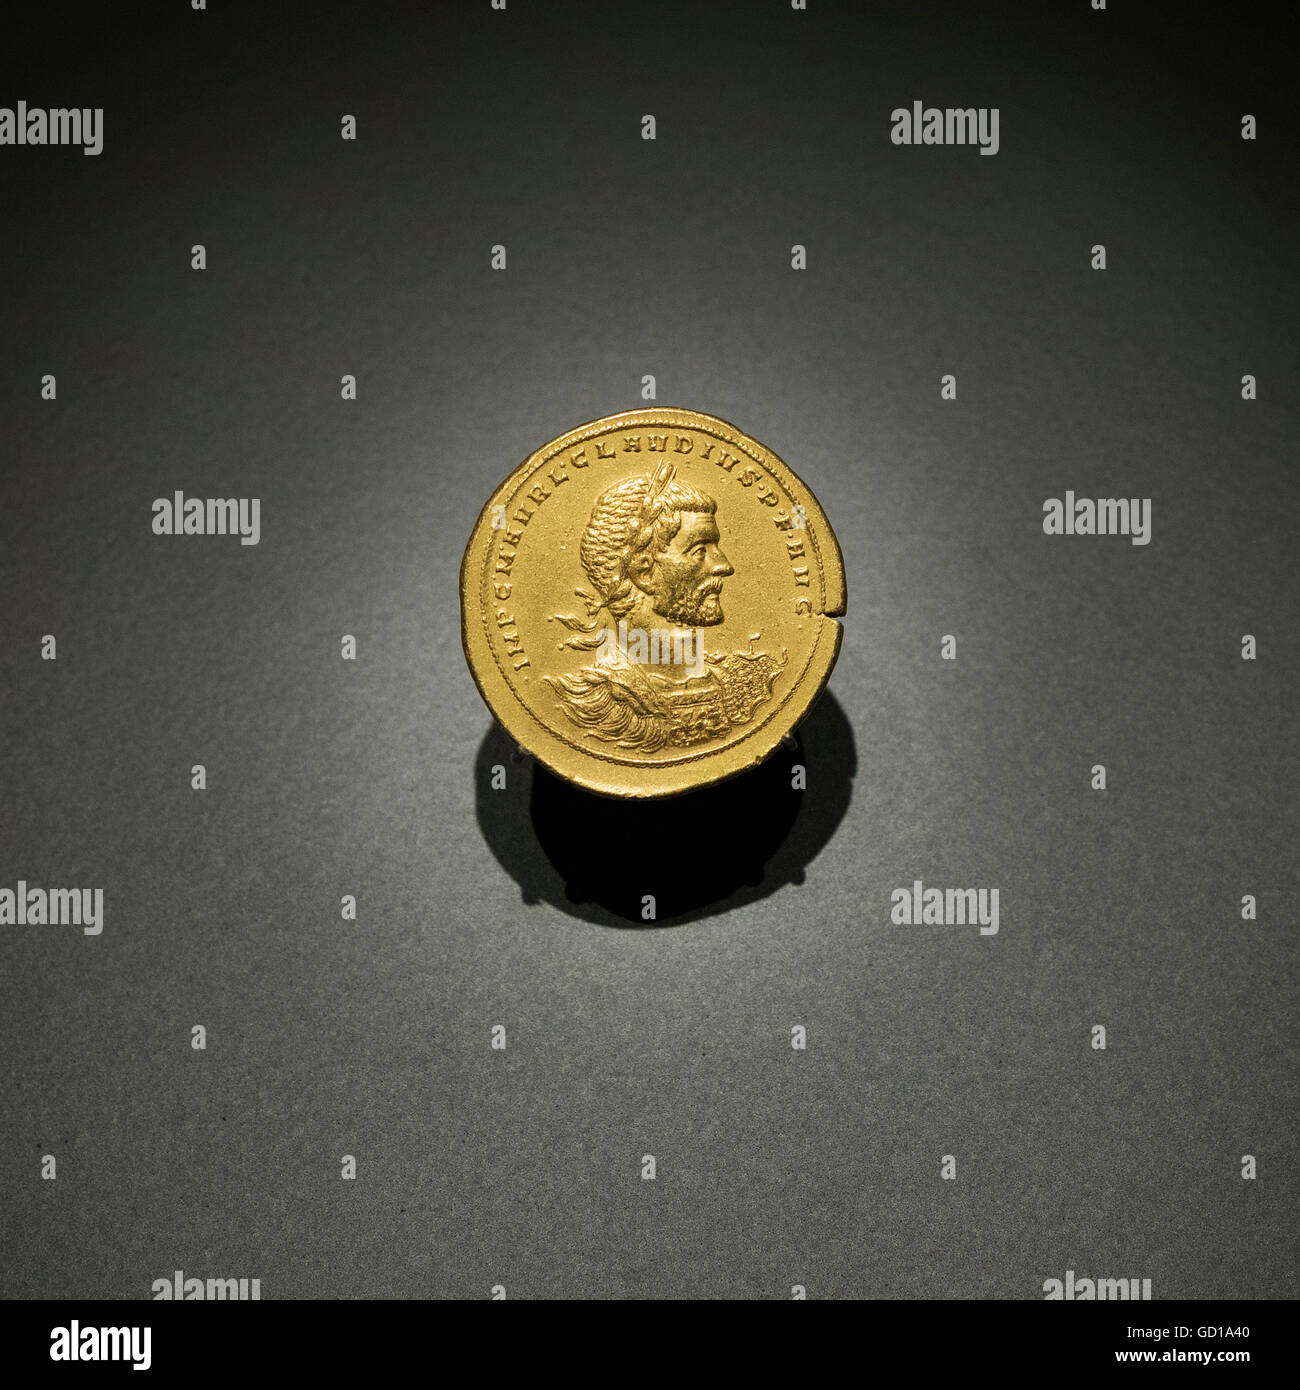 Madrid. Spain. Eight aurei gold coin bearing the portrait of Claudius II, ca. 268 AD, from Mediolanum (Milan, Italy). - Stock Image